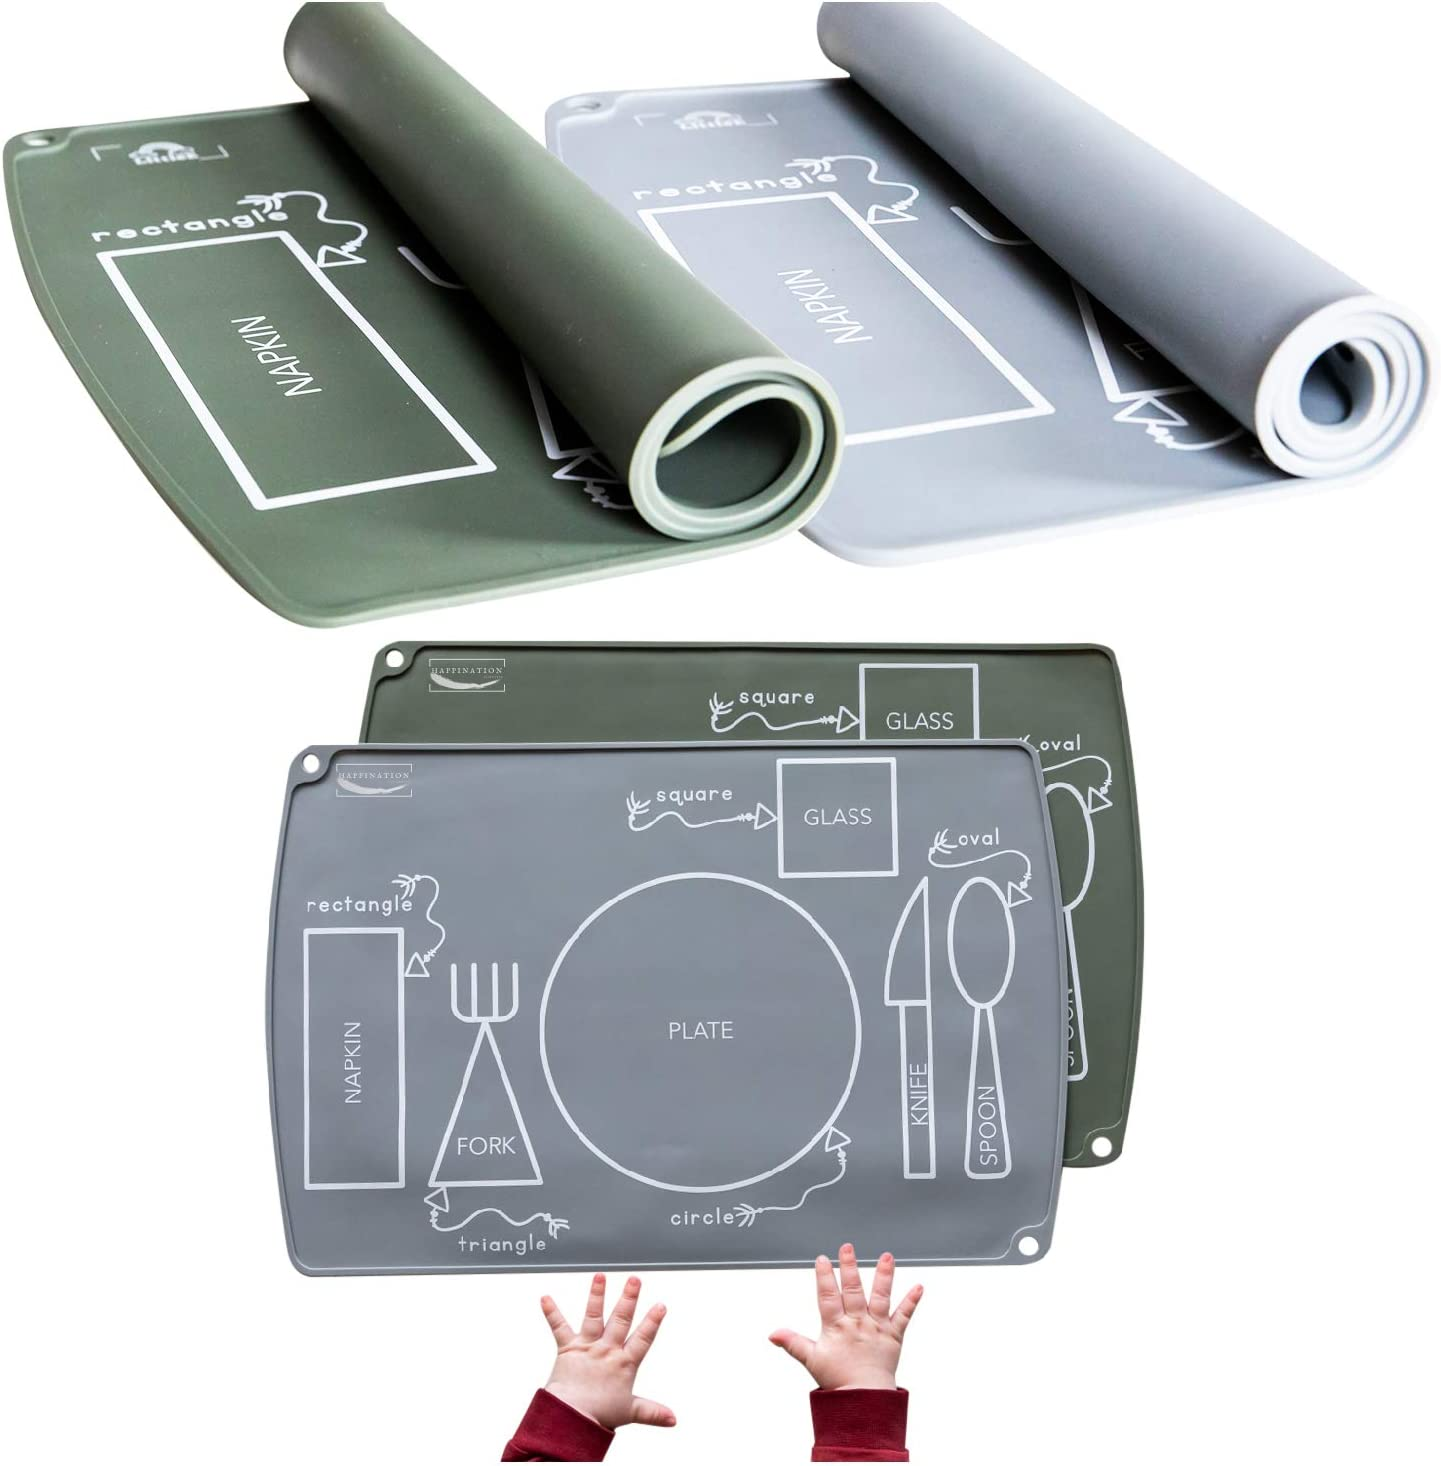 Kids placemats - Montessori Inspired Table mat - Easy Clean - Great for Baby led weaning - Educational placemats for Kids, Will Help Your Toddler Develop Independent Eating Skills - Toddler placemat